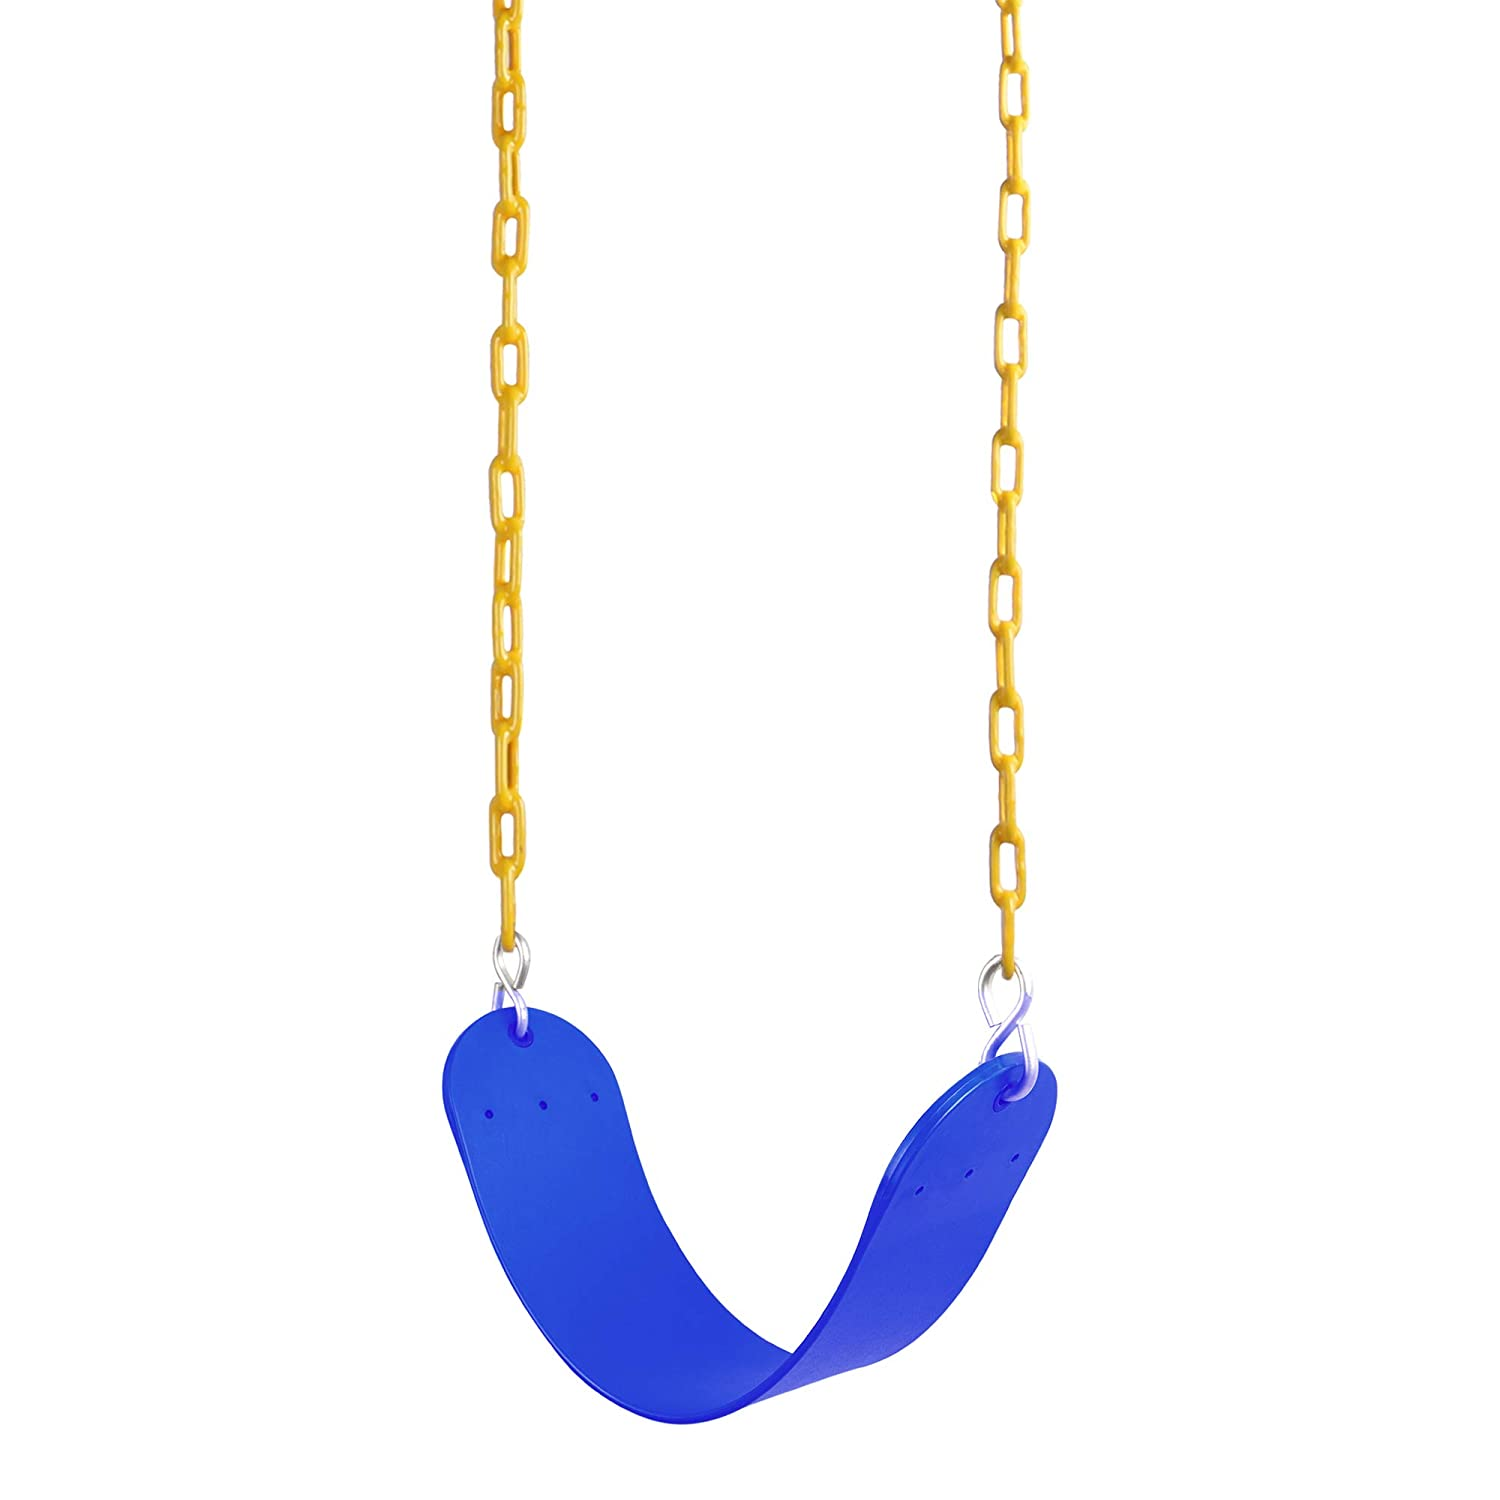 (blue) - Reehut Swing Seat Heavy Duty with 170cm Chain Plastic Coated, Swing Set Accessories Swing Seat Replacement, 140kg Weight Limit B074TDTYJ1